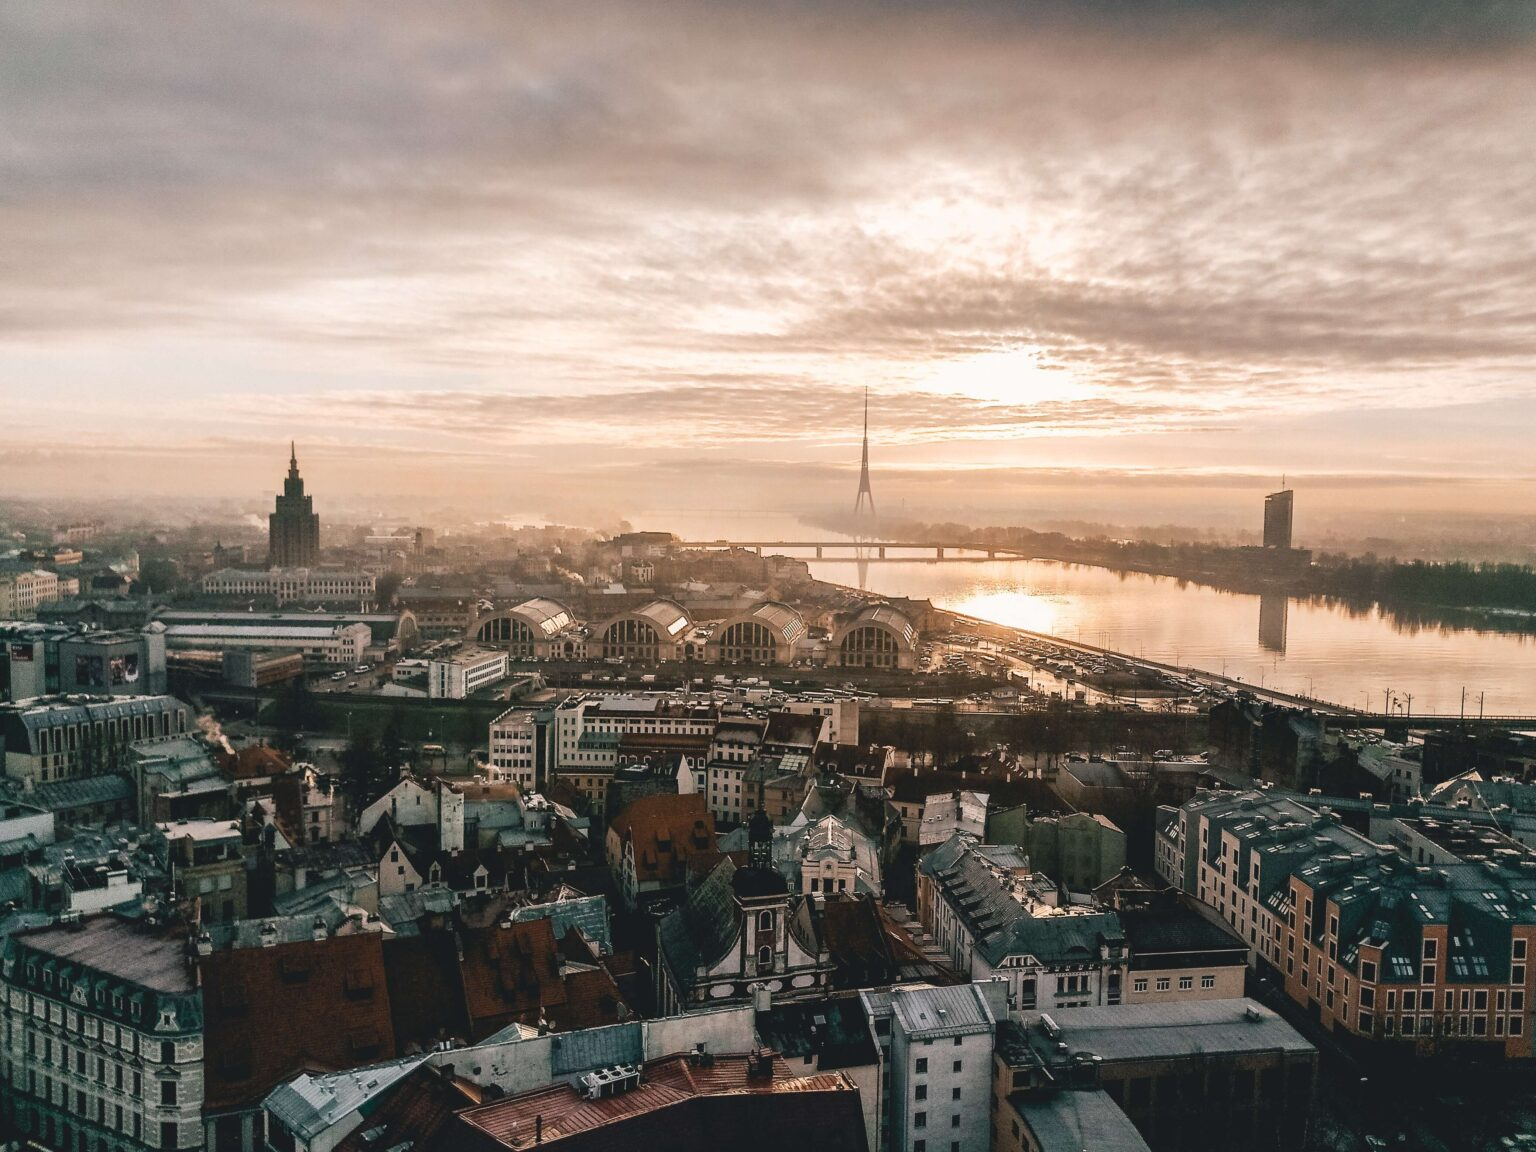 View at sunset across Riga, buildings lit up with golden light